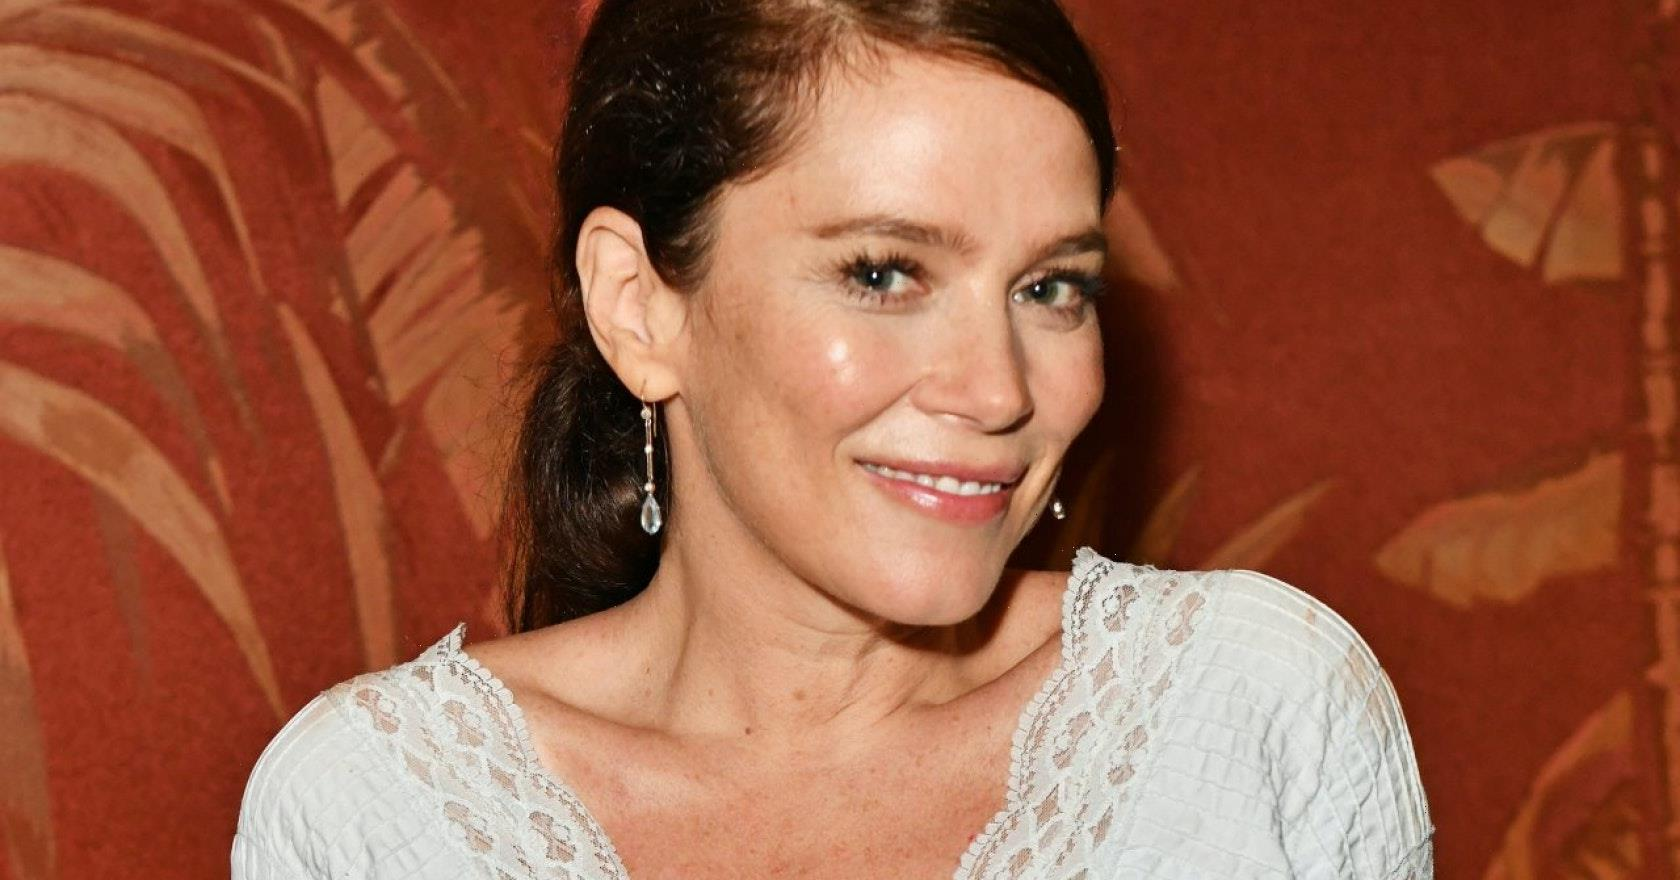 Anna Friel has a new TV series, and it's giving us big Succession vibes